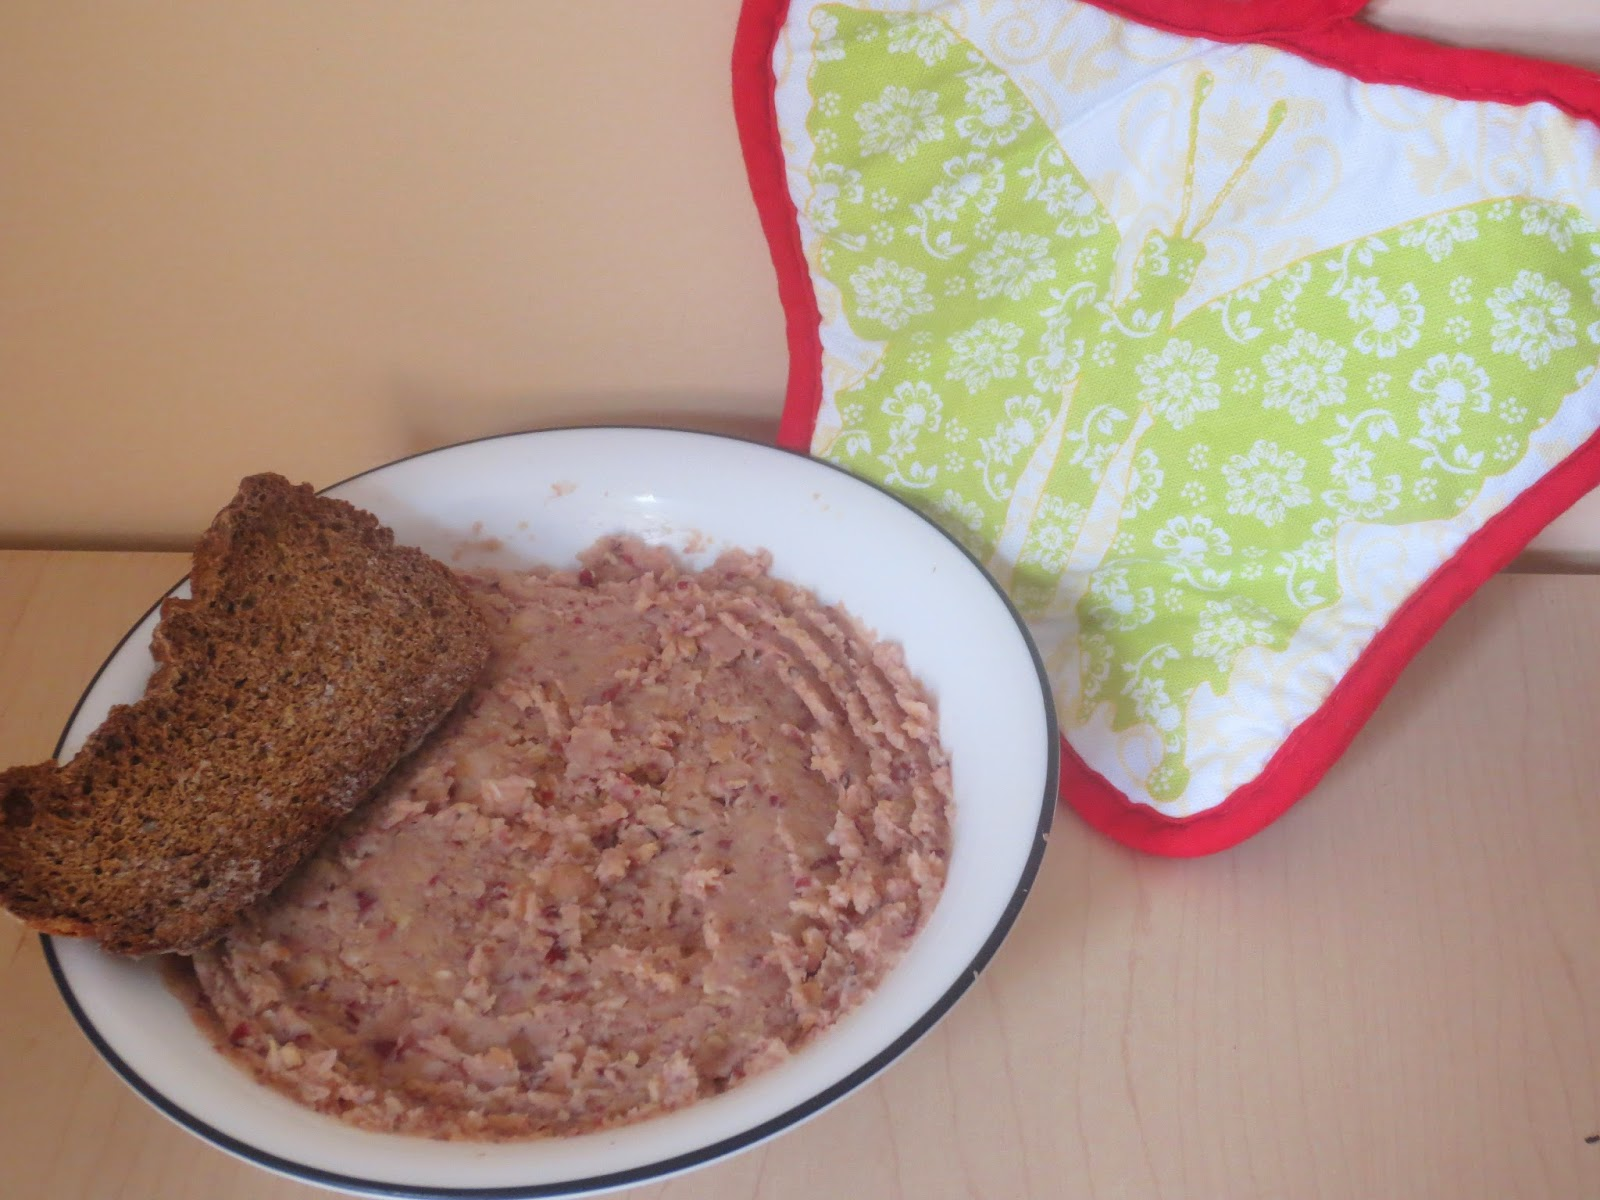 White kidney bean dip recipe